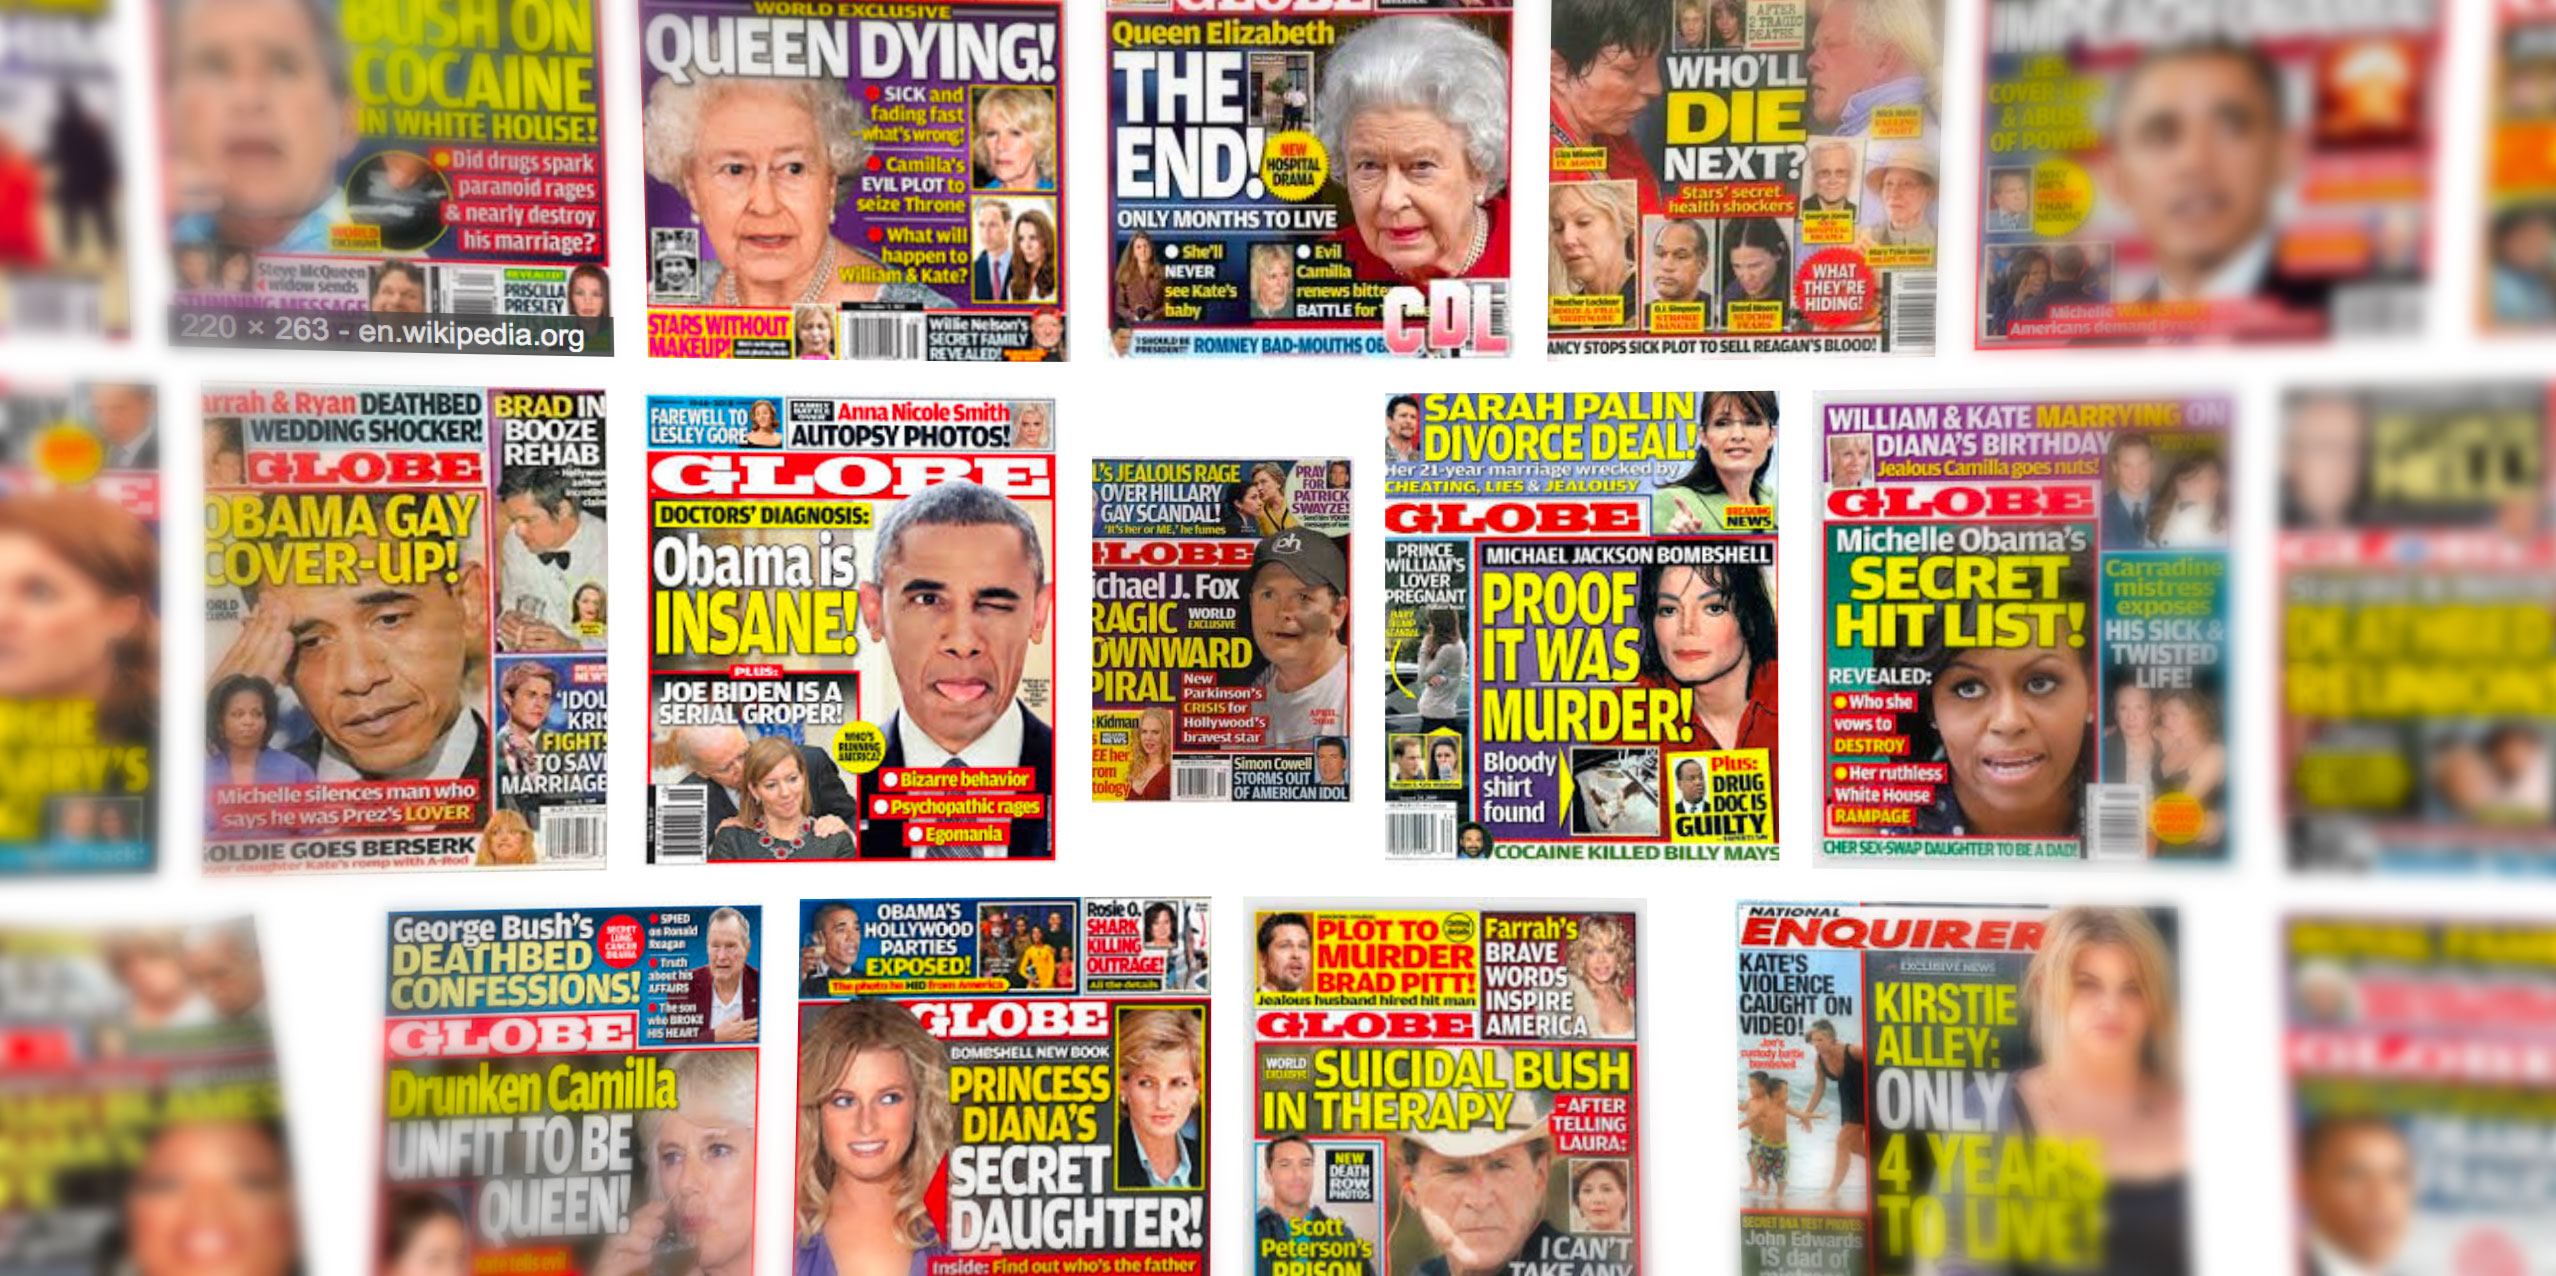 The Queen's Nazi shame, JonBenet's killer found, and Owen Wilson's baby mama revealed, in this week's dubious tabloids